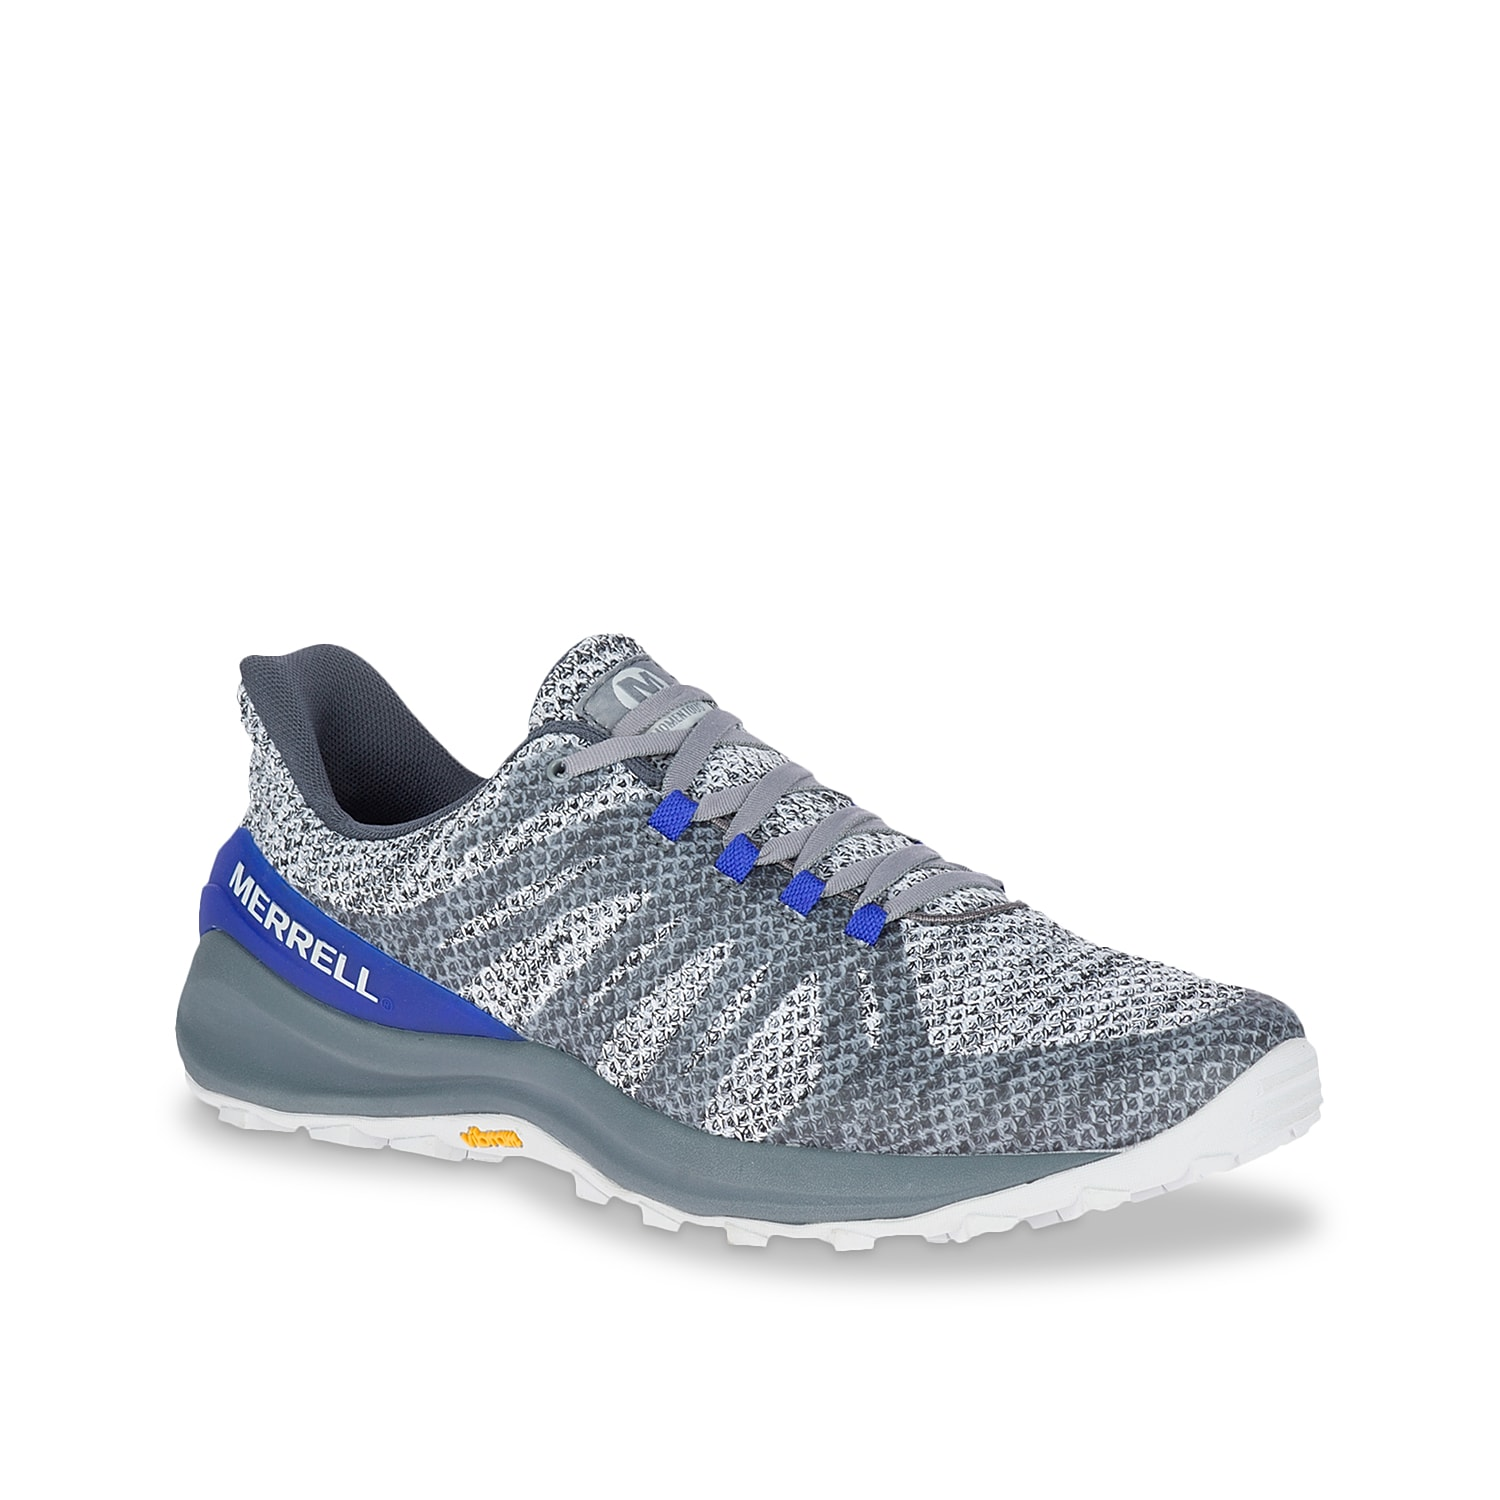 Conquer new paths with the secure foothold of Momentous trail running shoe from Merrell. Supported with Hyperlock¿ TPU molded heel counter, this sneaker comes with M Select¿ Fresh antimicrobial agents and TrailProtect¿ rock plate for underfoot security in rough terrains.